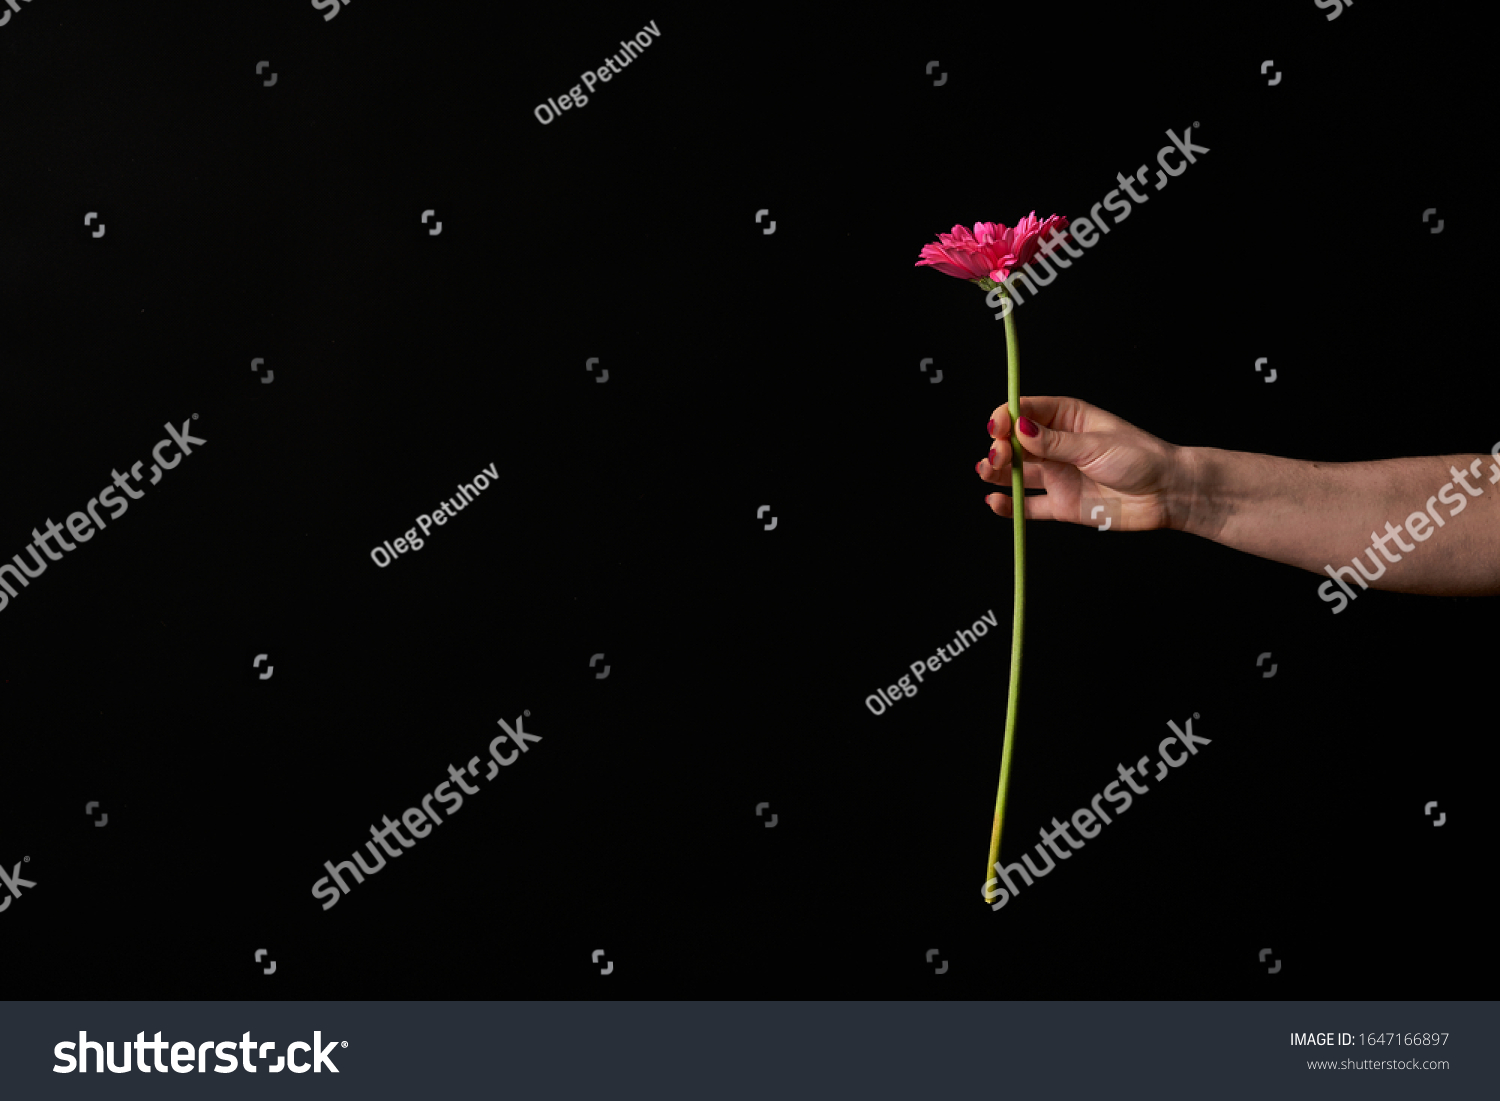 Hand holding pink gerber daisy isolated on black background. Flowers in hand #1647166897